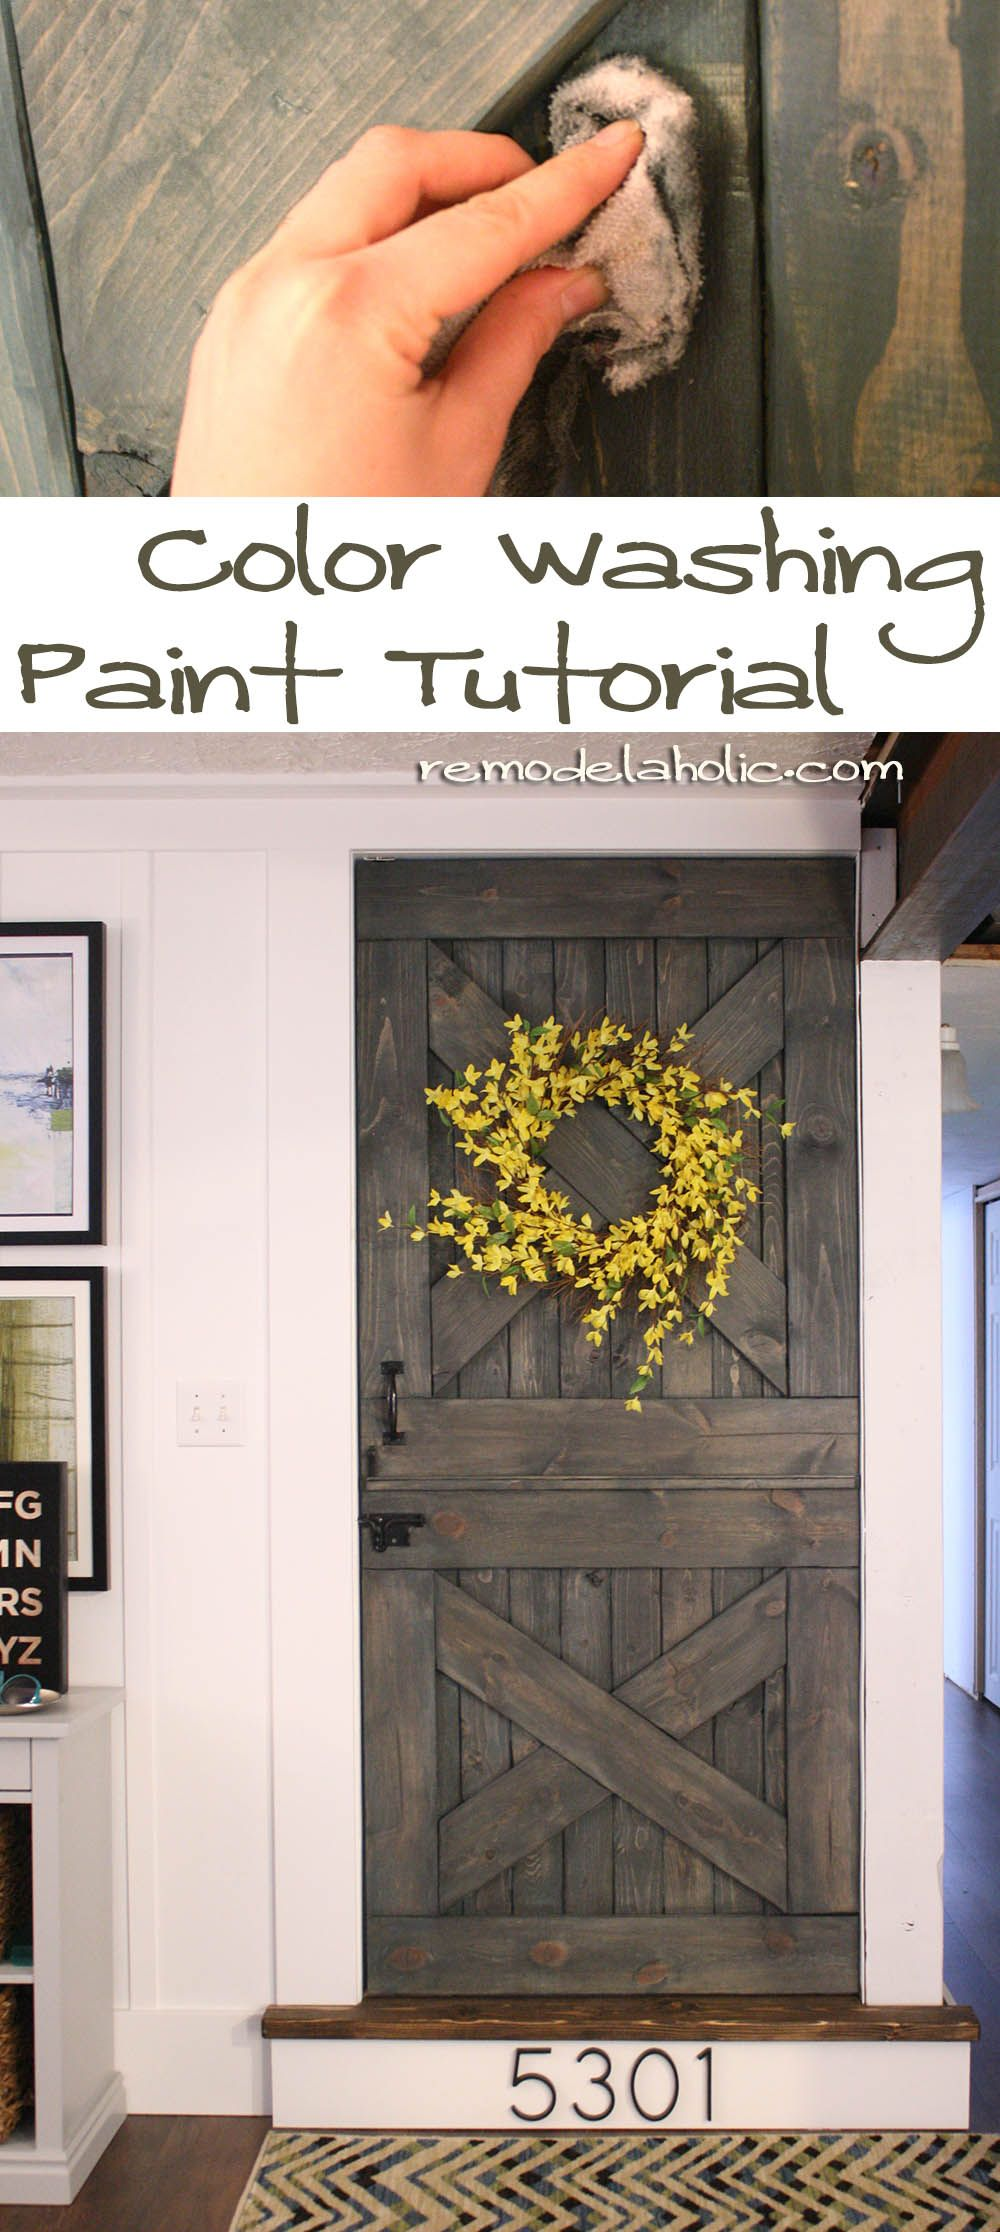 Color Washing Paint Technique Remodelaholic Com Paint Color Wash Grey Barn Door Wood Working Projects Painting Techniques Diy Painting Painting